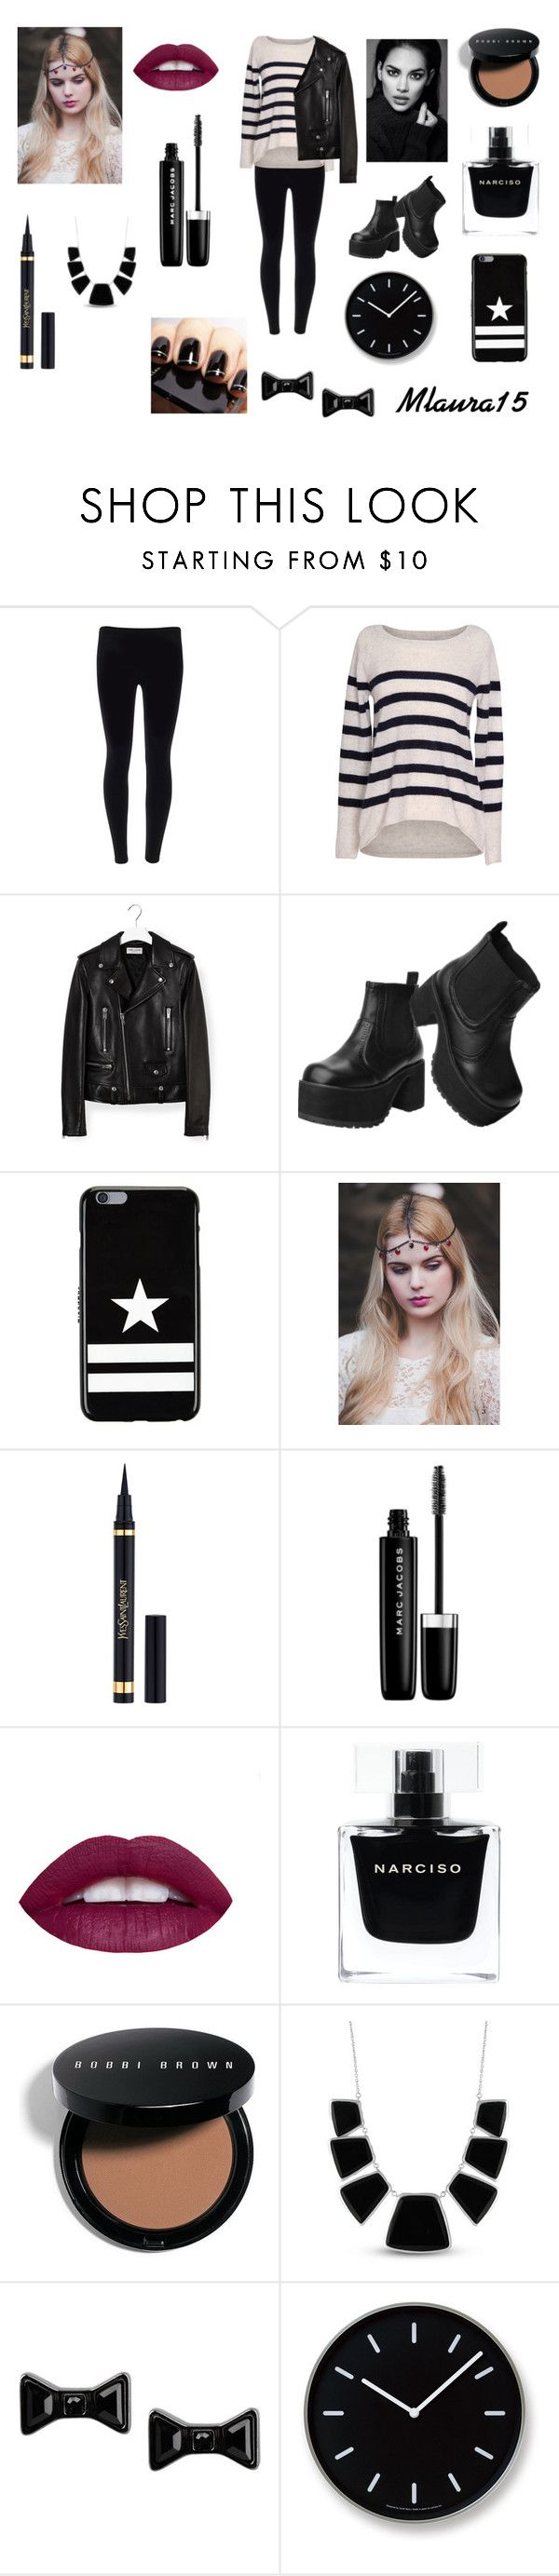 """""""style"""" by laurenciusz ❤ liked on Polyvore featuring Velvet by Graham & Spencer, Yves Saint Laurent, T.U.K., Givenchy, Marc Jacobs, Narciso Rodriguez, Bobbi Brown Cosmetics, Karen Kane, Marc by Marc Jacobs and Lemnos"""